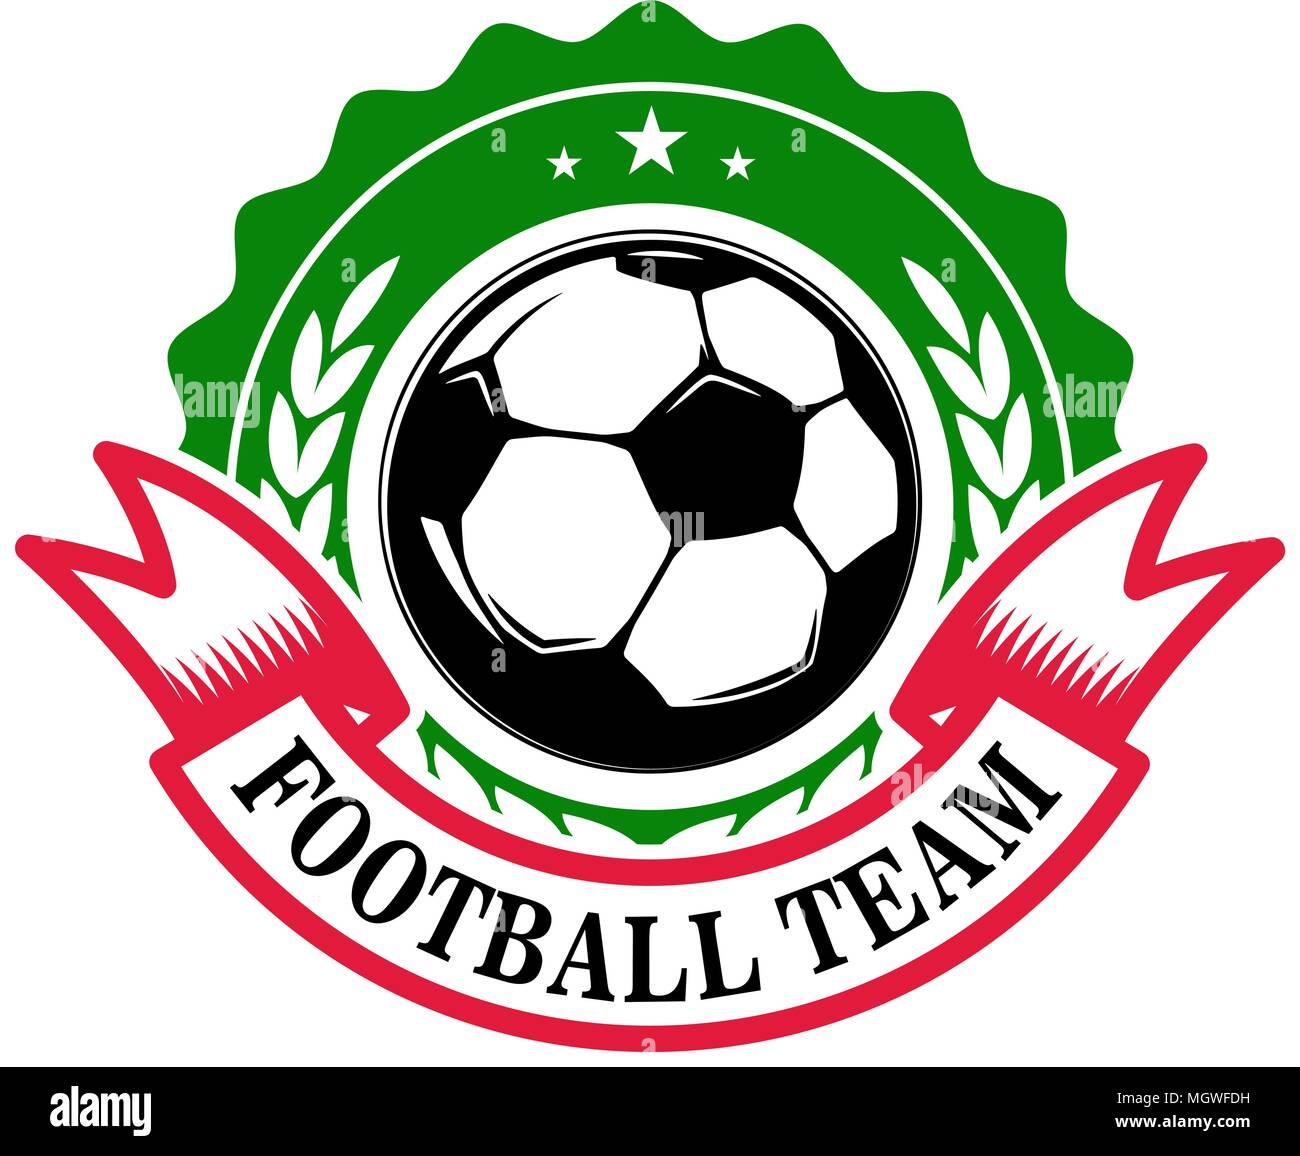 Football Team Emblem Template With Soccer Ball Design Element For